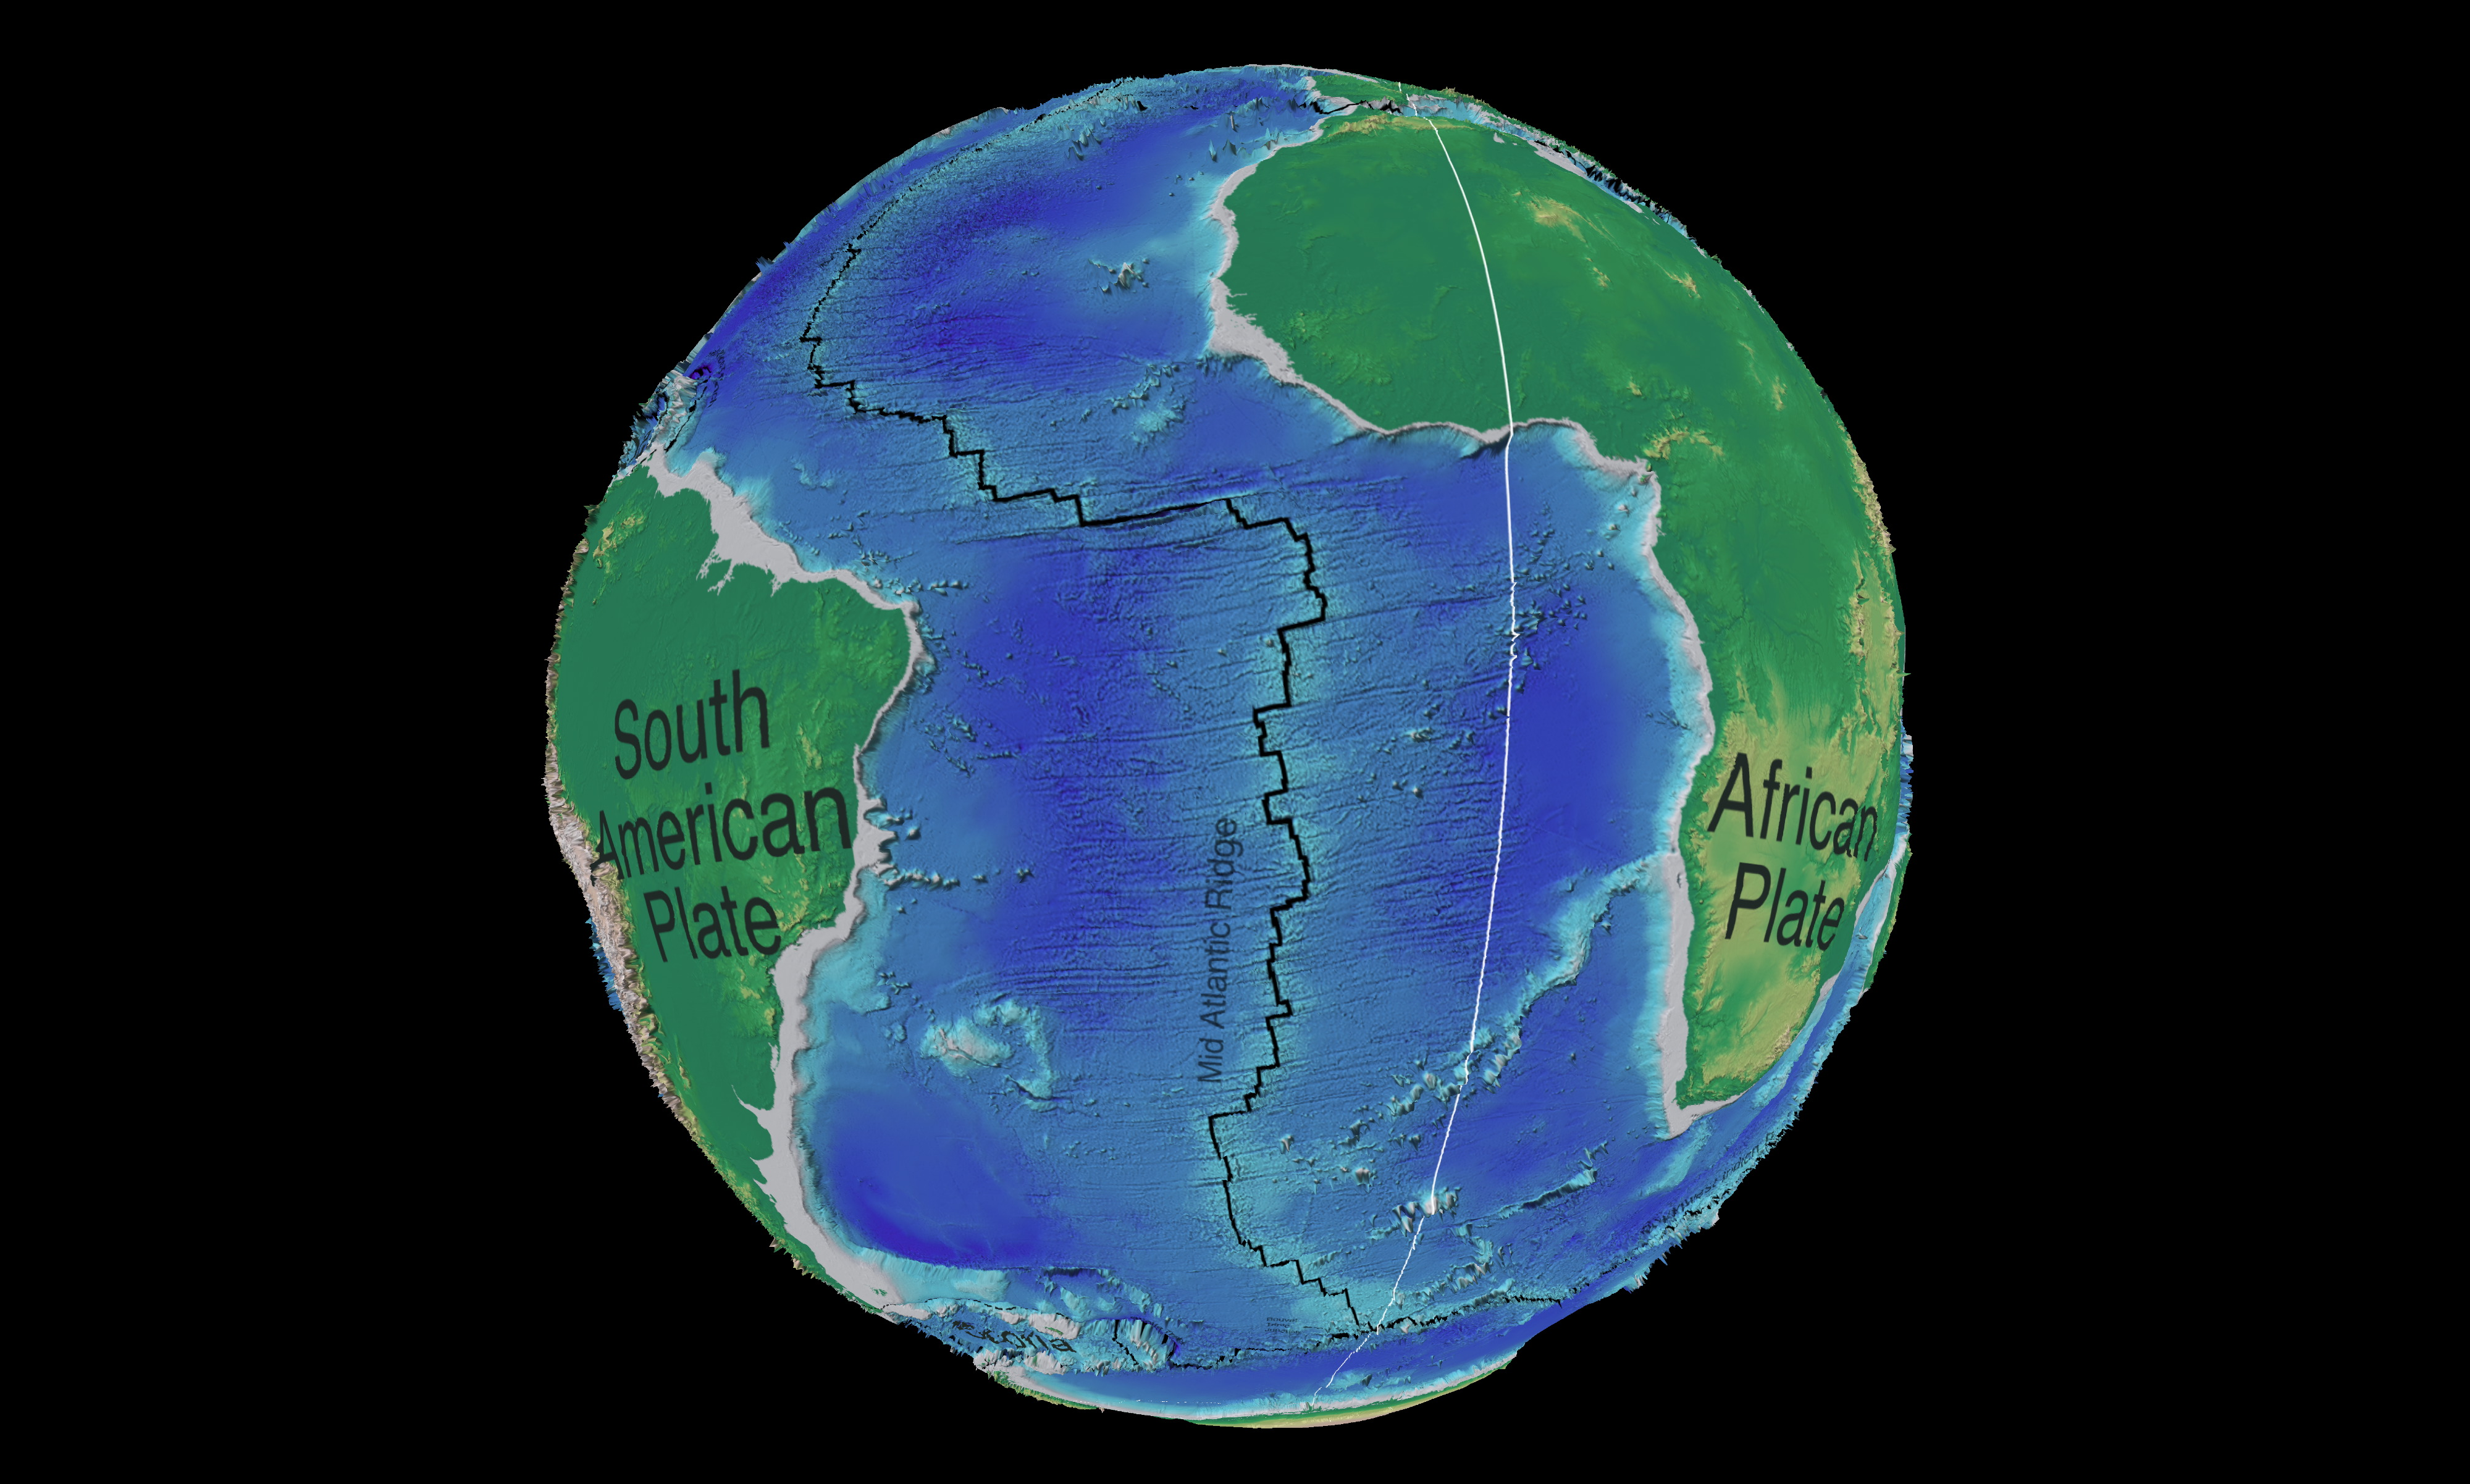 Mid Atlantic Ridge The mid-atlantic ridge (mar) Pacific Ocean Underwater Map